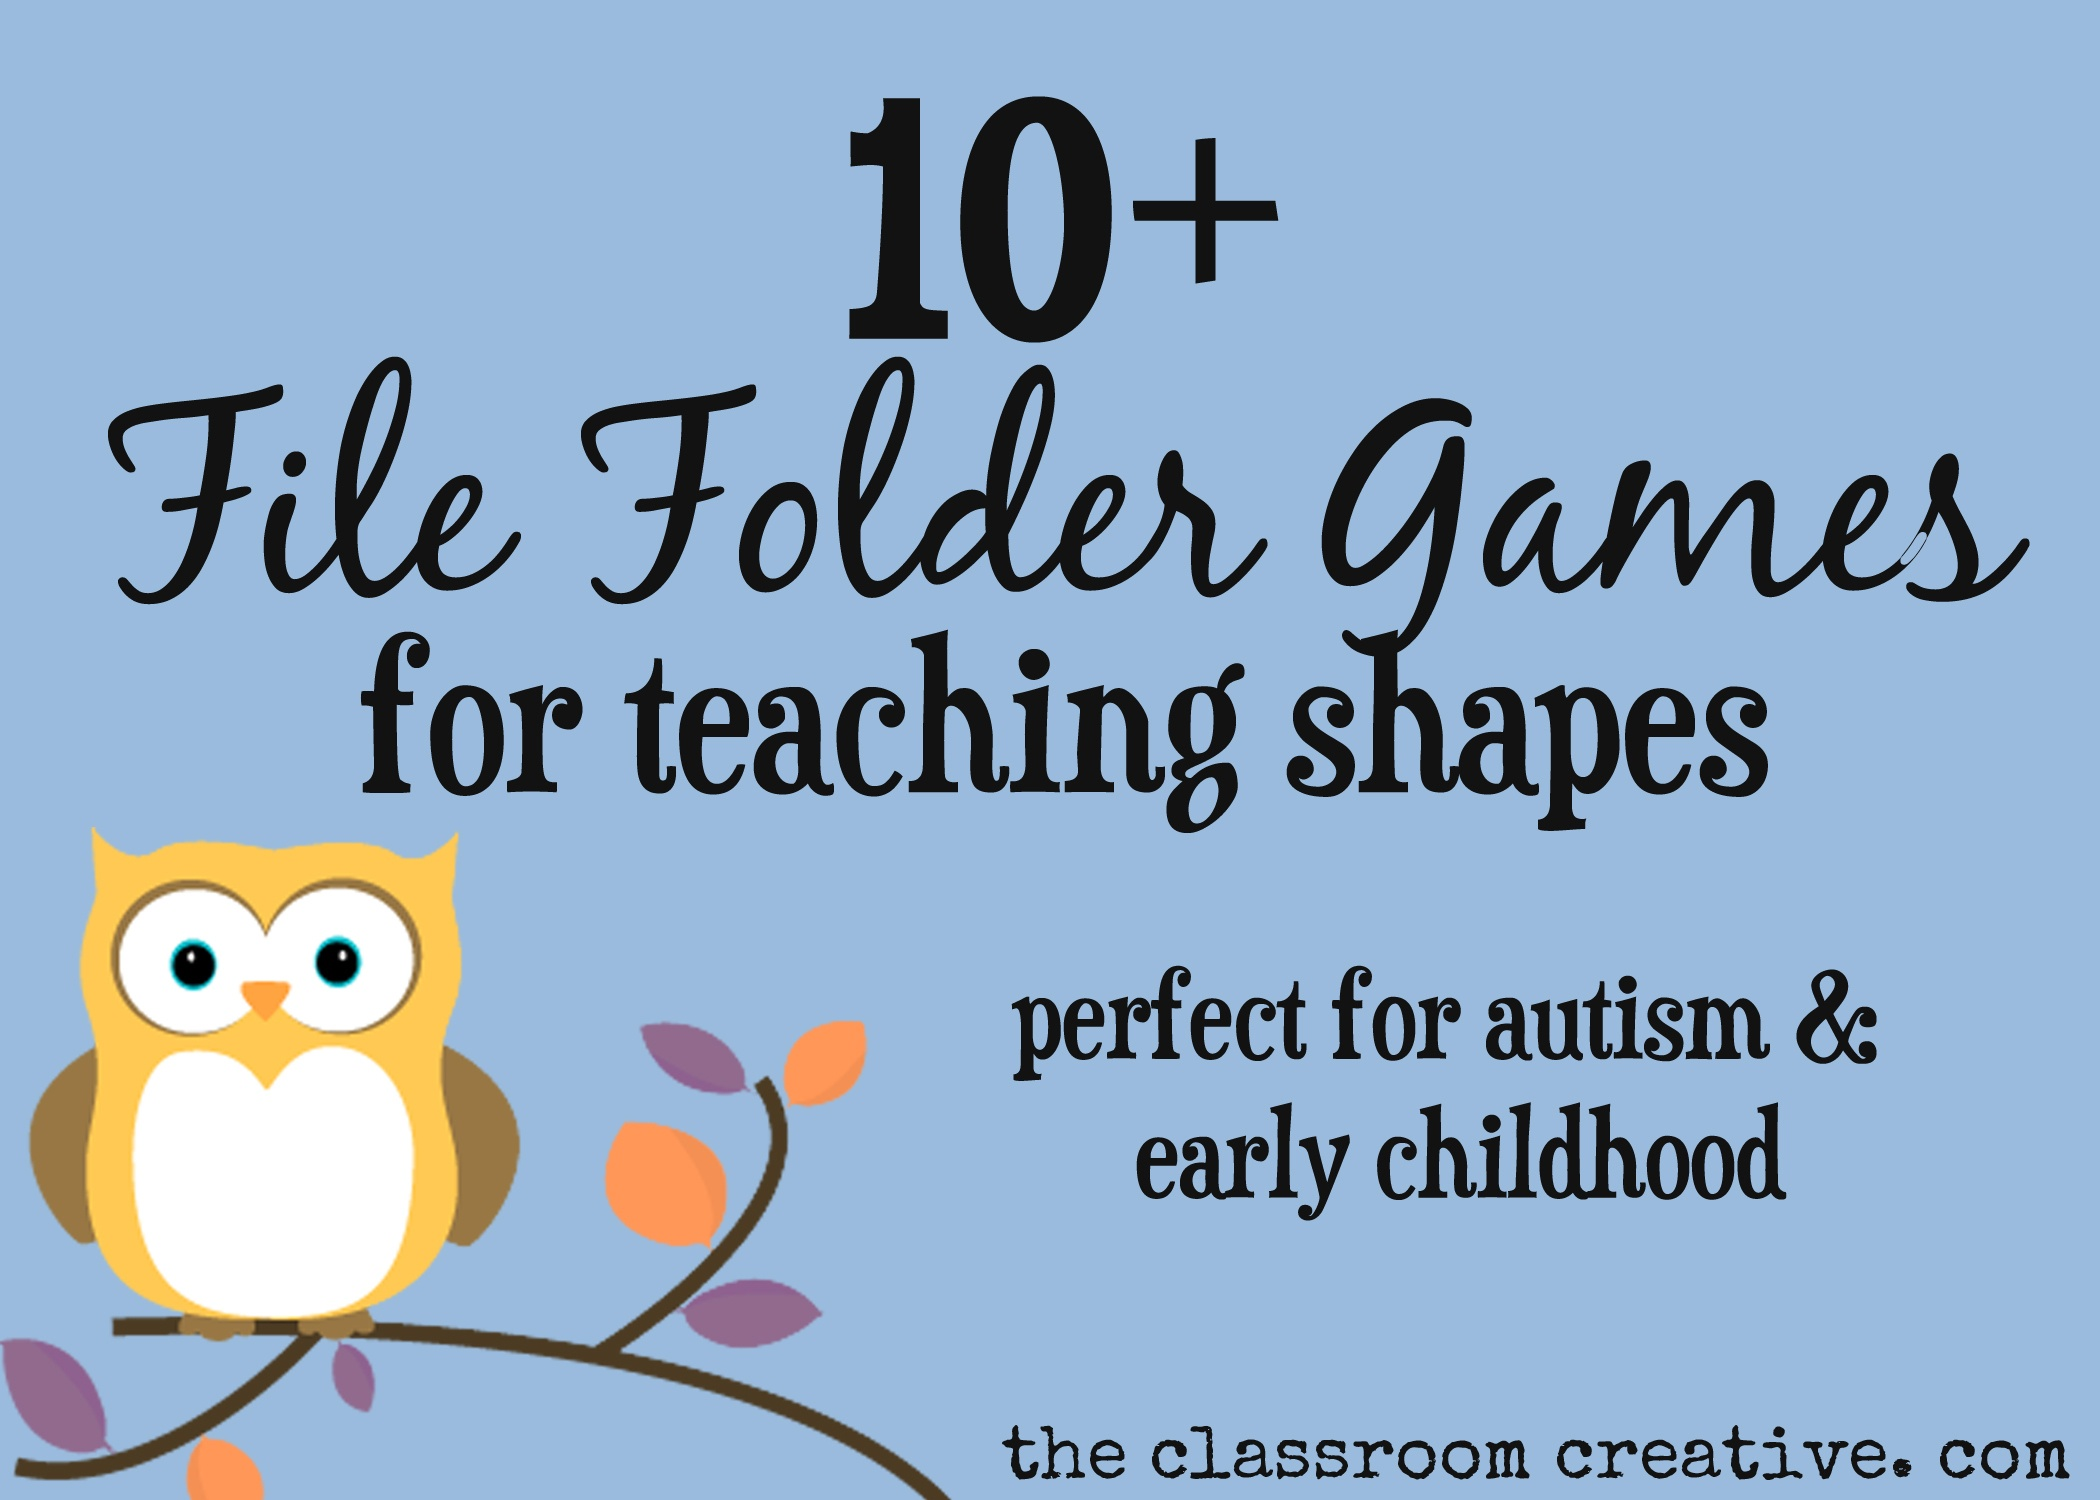 File Folder Games For Teaching Shapes - Free Printable File Folders For Preschoolers